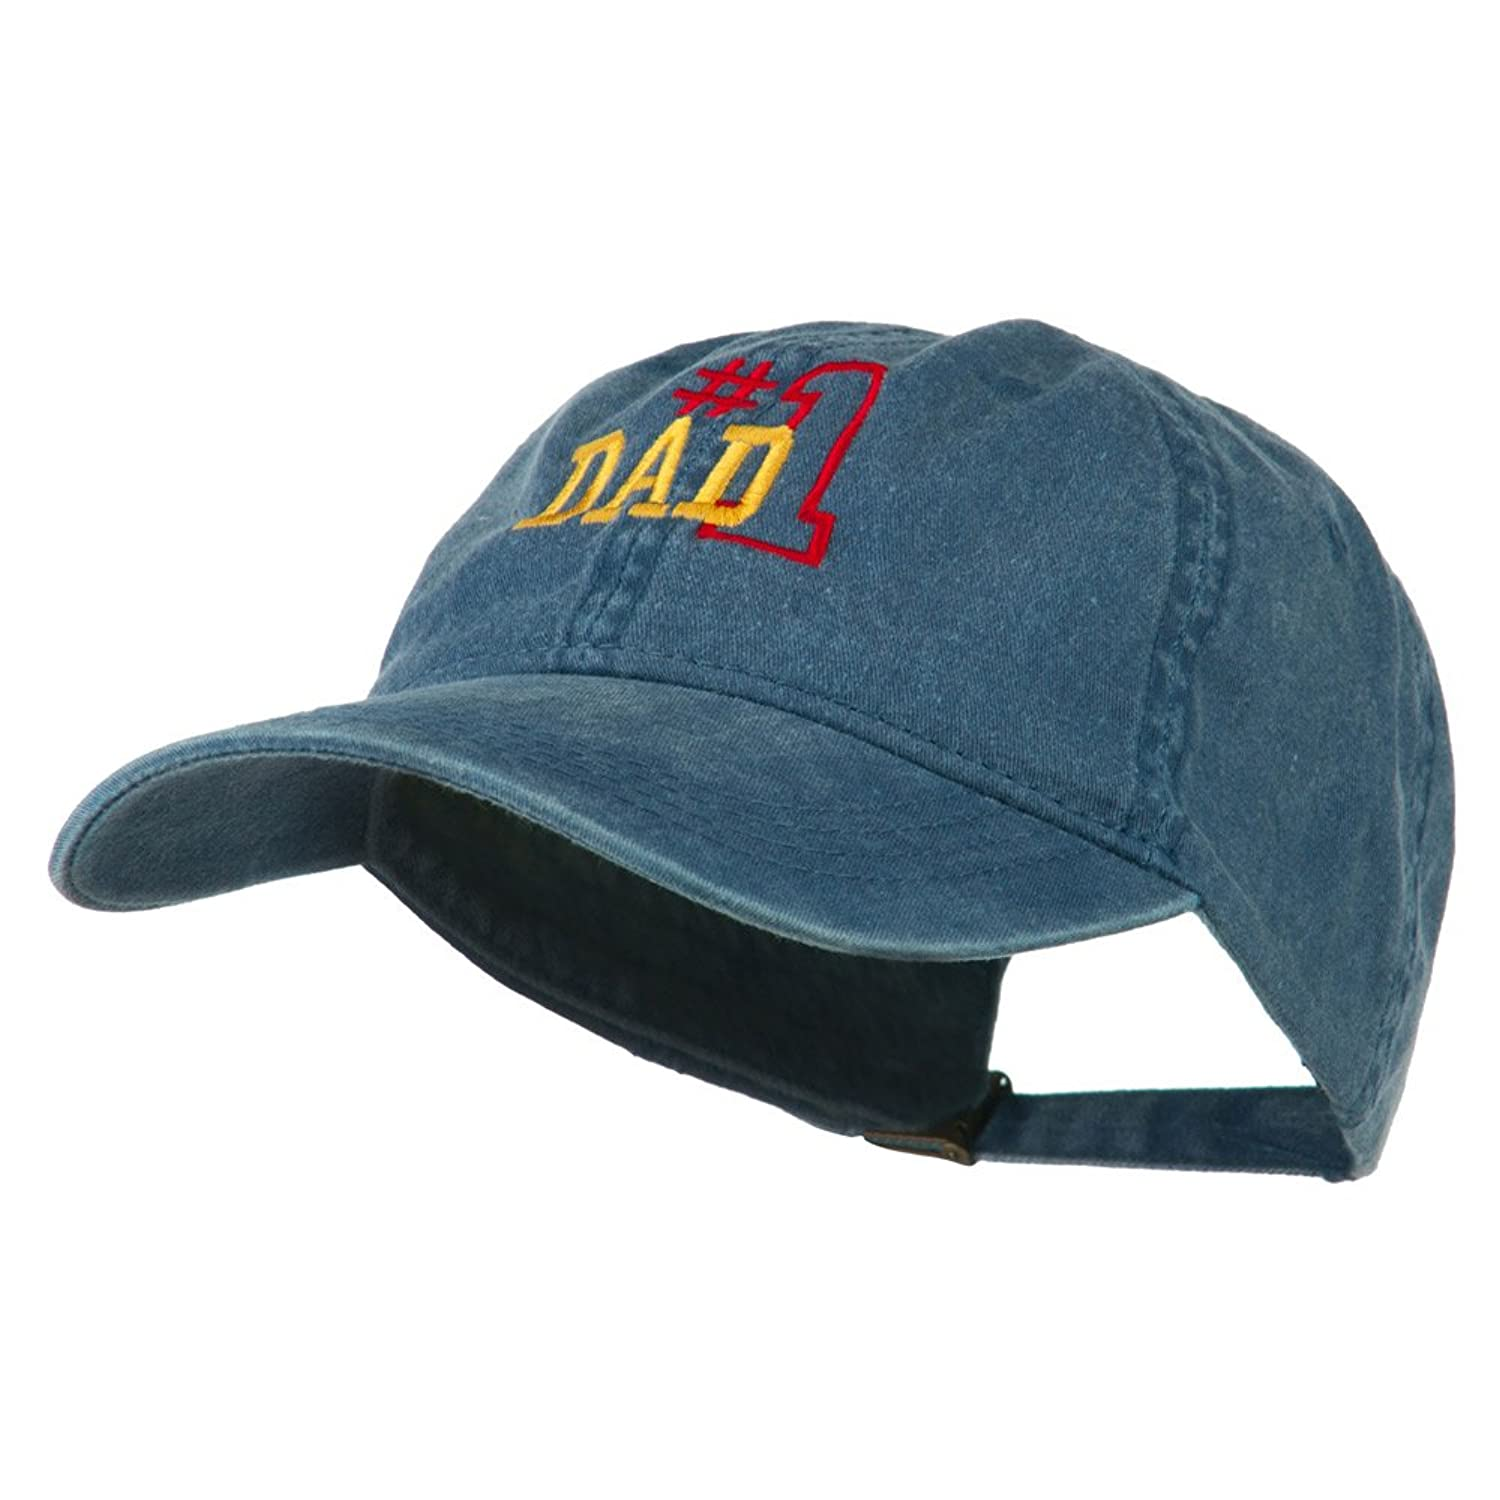 Funny Dad Hats For Sale c7152c35726